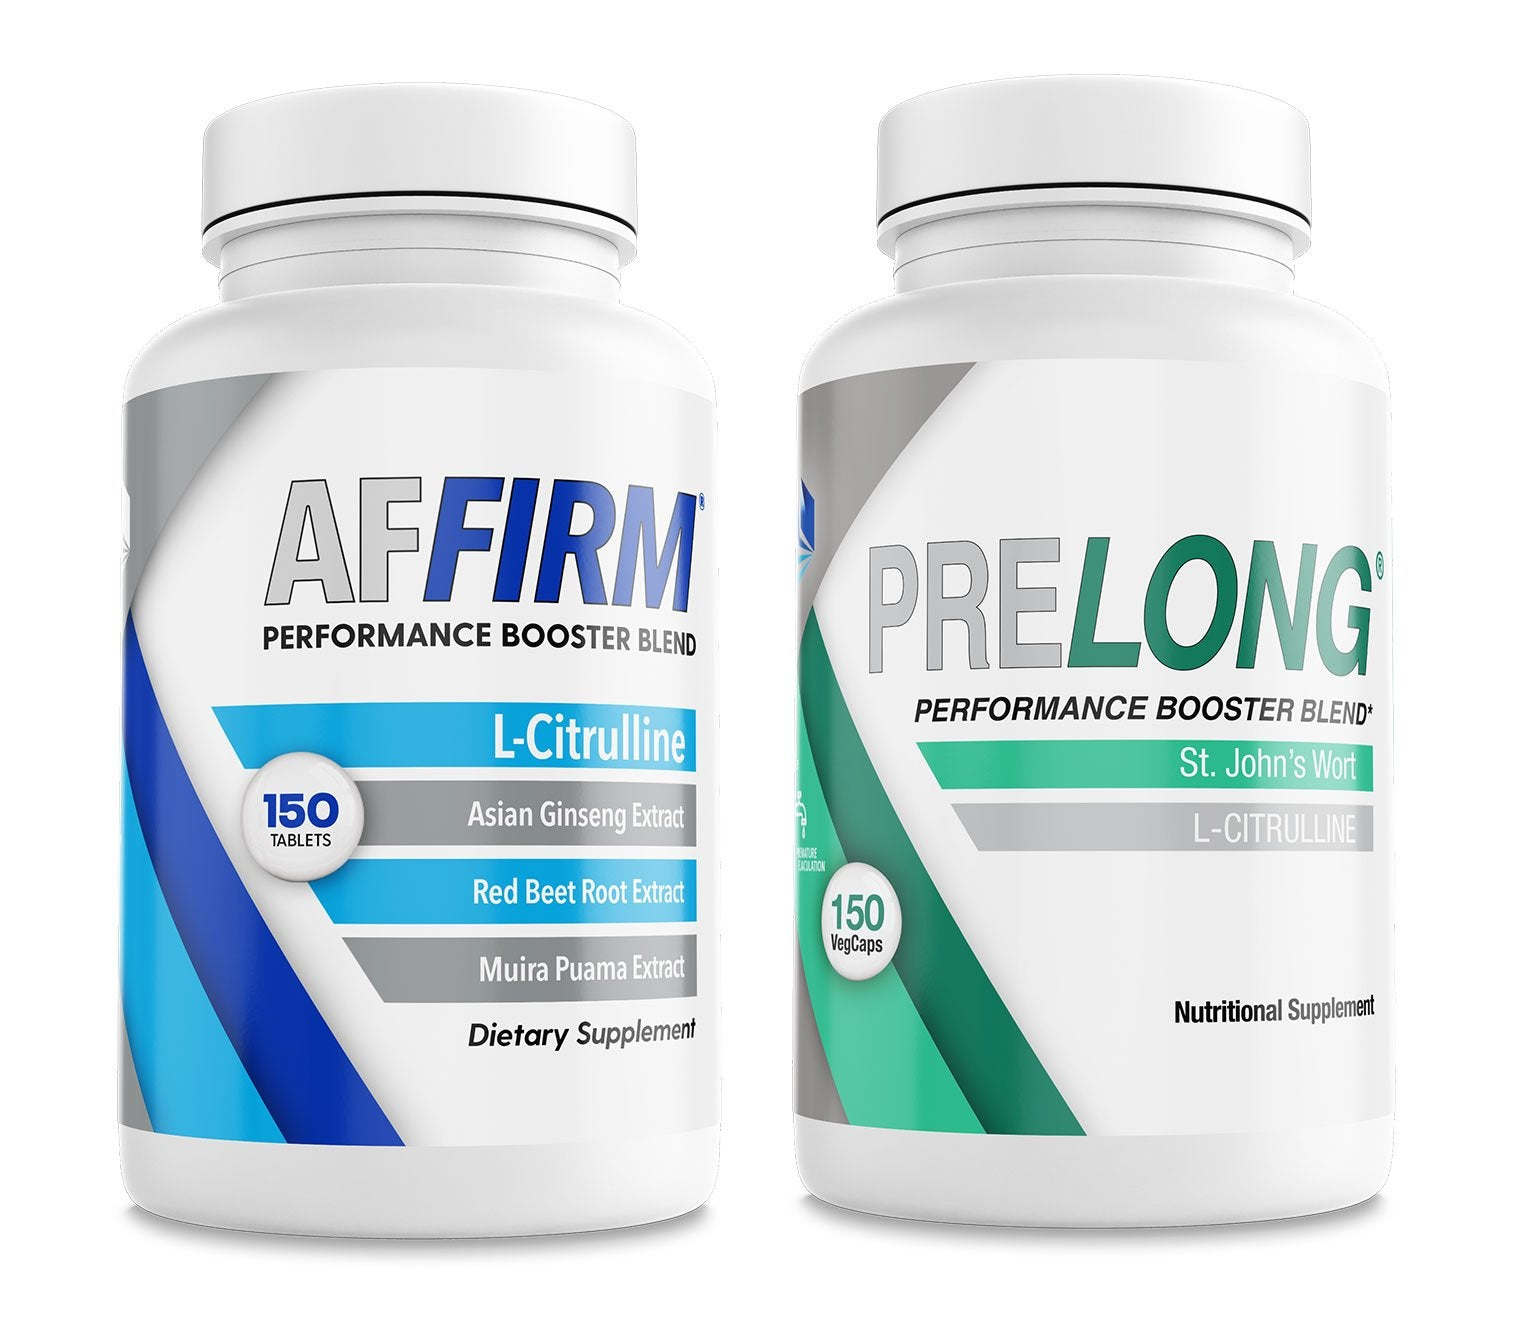 AFFIRM L-Citrulline 750mg (150 Tablets) & PRELONG Proprietary St. Johns Wort (120 Capsules) Nutritional Supplement Pack I Gluten Free & Non-GMO